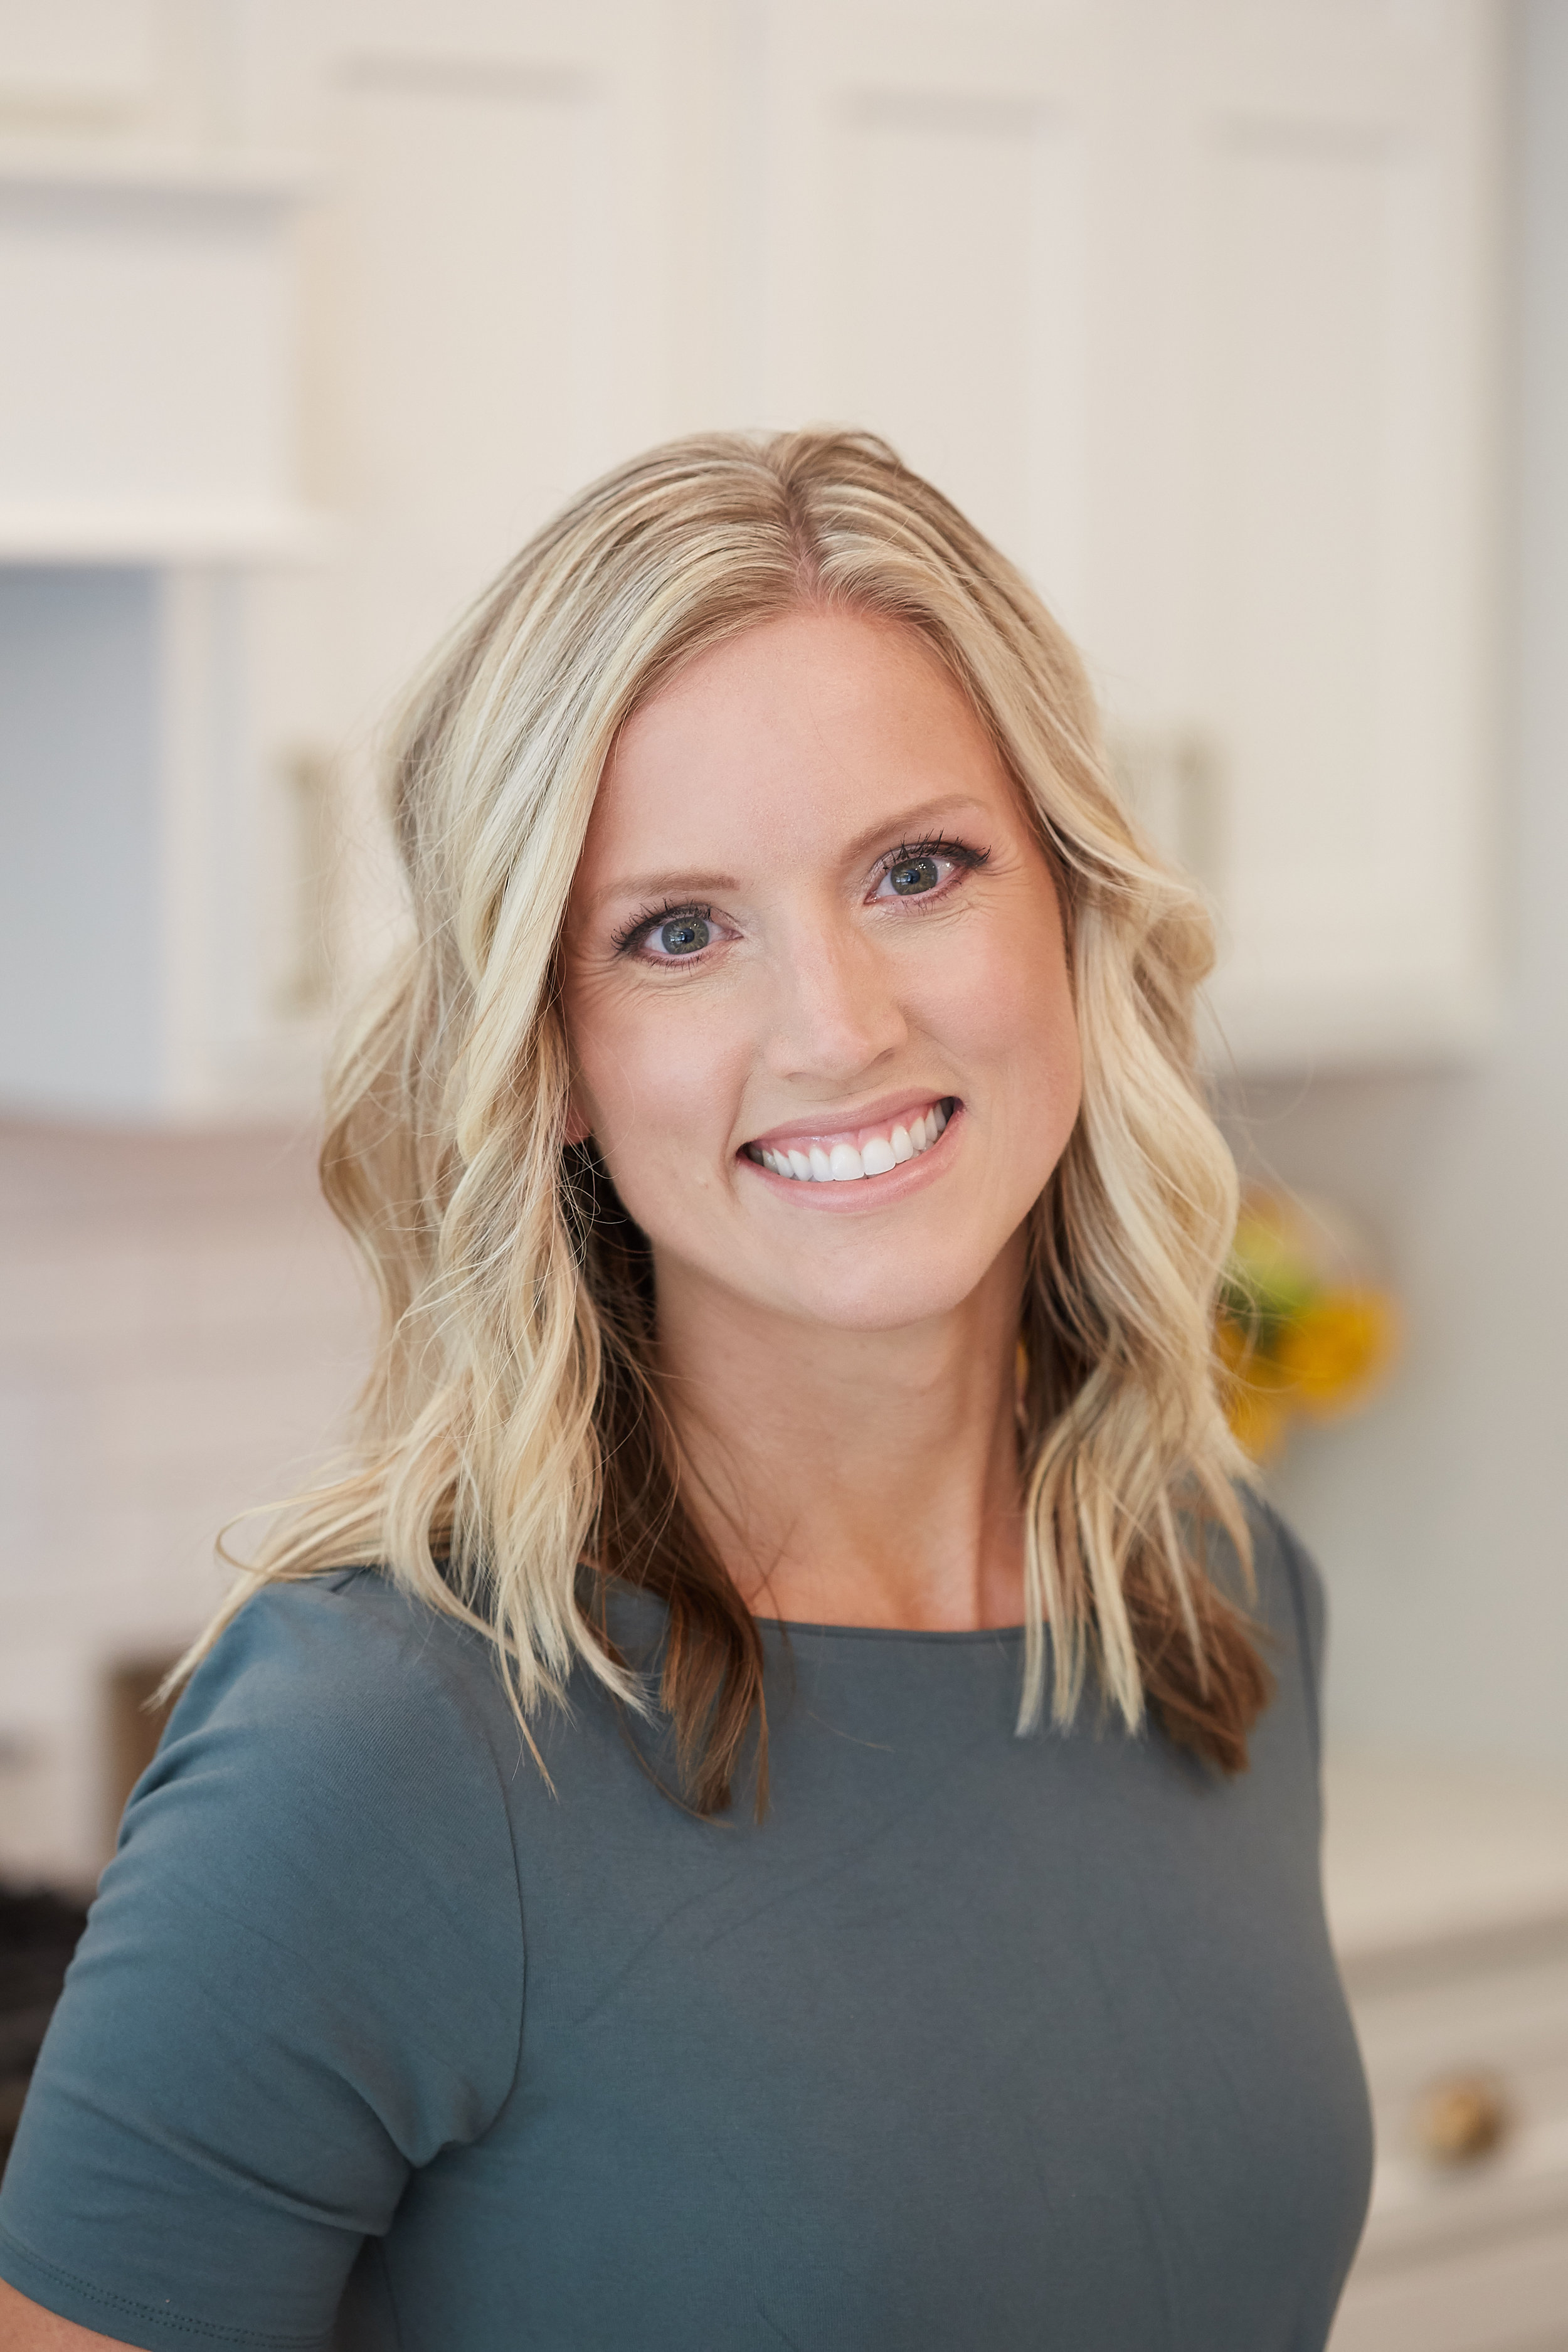 """Hi! My name is Jess. - Protein-loving, vegetable-obsessed, wife, mom, Registered Dietitian, marathoner, wanderlusting adventurer. I have a lot of titles. And I love them all.The best title I have? Life changer.You see my goal in life is to inspire, encourage, challenge and educate you to push yourself to reach YOUR goals, live your best life and rediscover the joy within yourself.My passion for nutrition began my senior year in high school. As a sports nut, I was eager to learn more about food and its effect on the body. More specifically my body. I wanted to learn how food (the """"right"""" foods that is) could help my sports performance. So my senior years I completely changed my eating habits.Gone were the days of cookies, junk food and other processed foods. Instead, I started preparing salads, fruits and lean proteins to take to track meets. I even started doing the grocery shopping and making meals for my parents! That track season, I flew past many of my self-imposed goals and even competed in the state track meet! (PS - I just missed beating the school record for the mile by 1 second!)"""